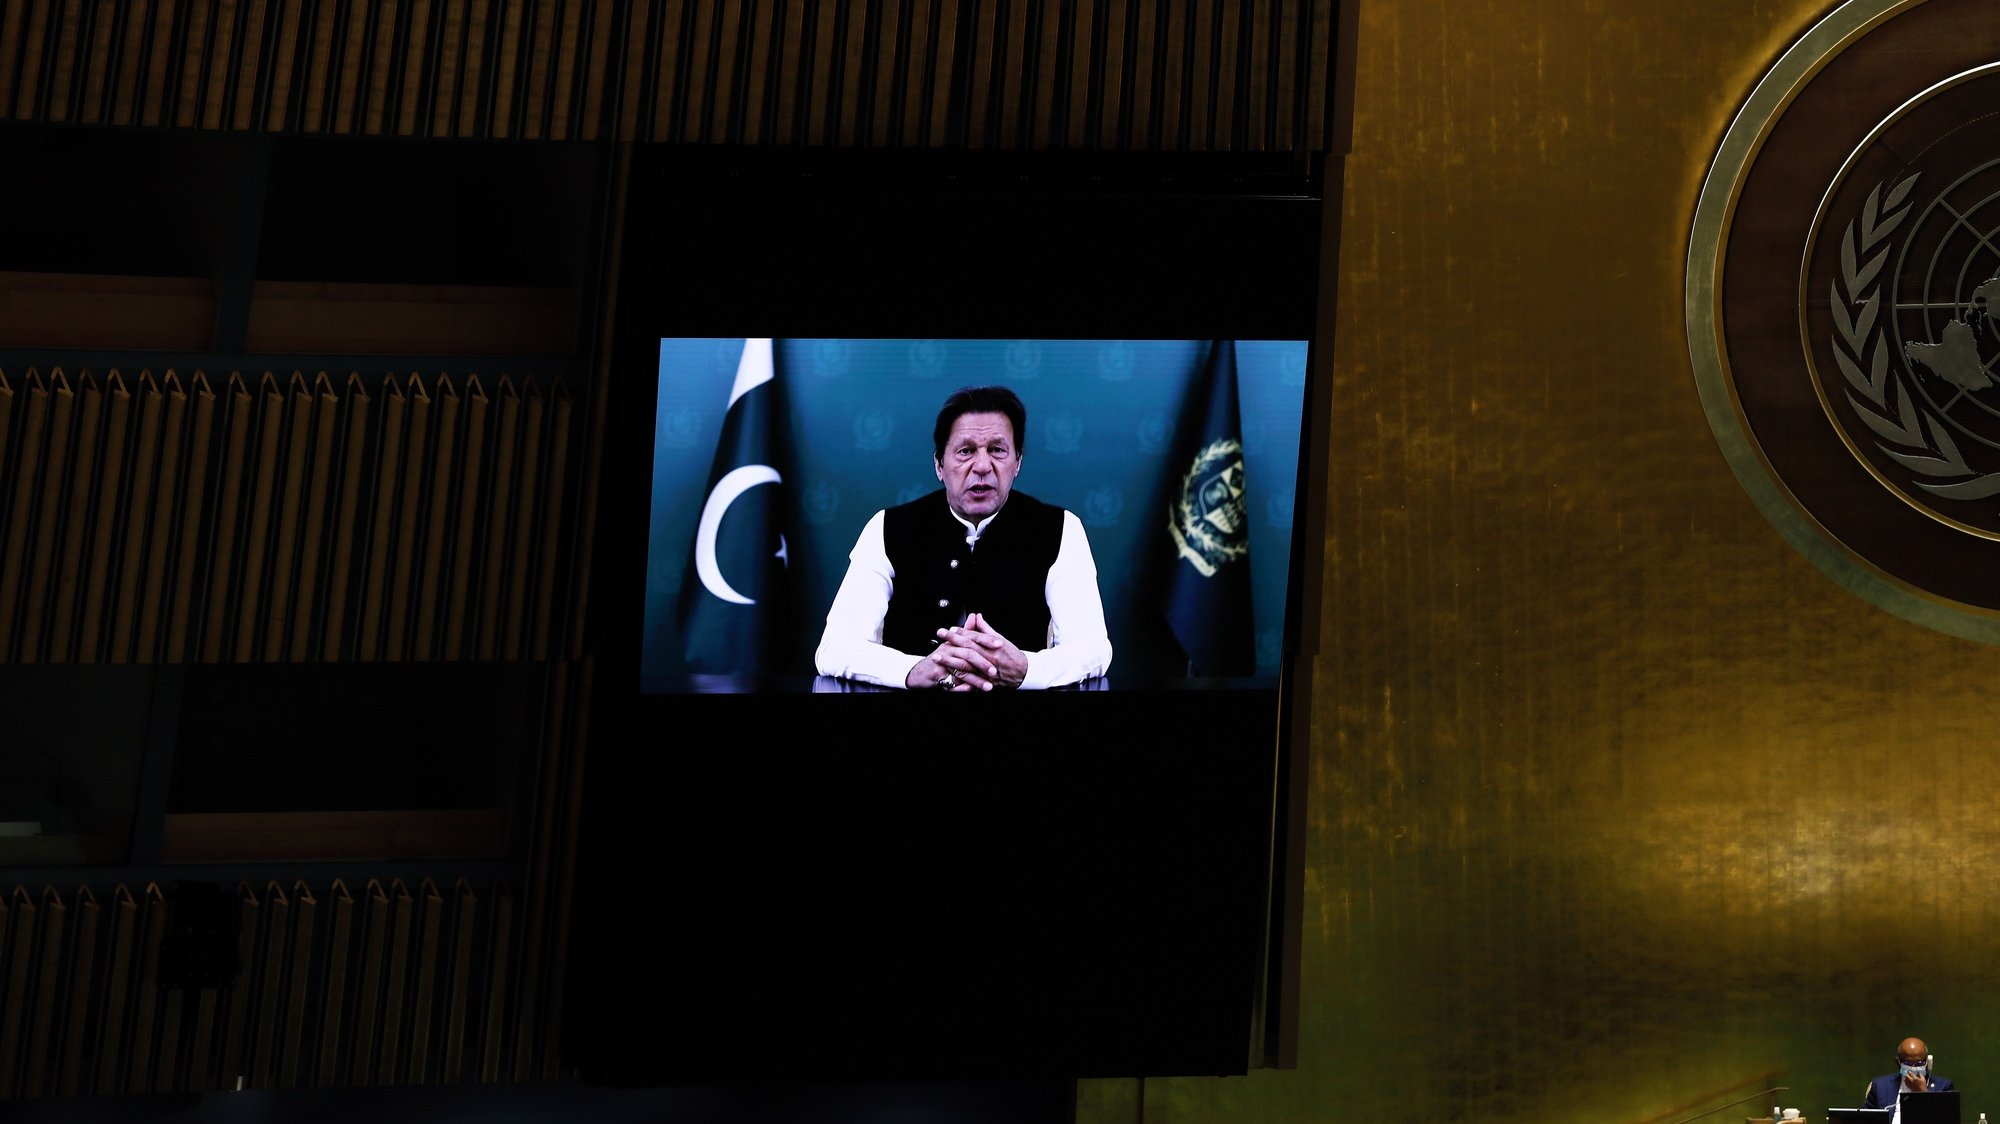 epa09486571 Prime Minister of Pakistan, Imran Khan addresses, via prerecorded video the General Debate of the 76th Session of the United Nations General Assembly at UN Headquarters in New York, New York, USA, 24 September 2021.  EPA/PETER FOLEY